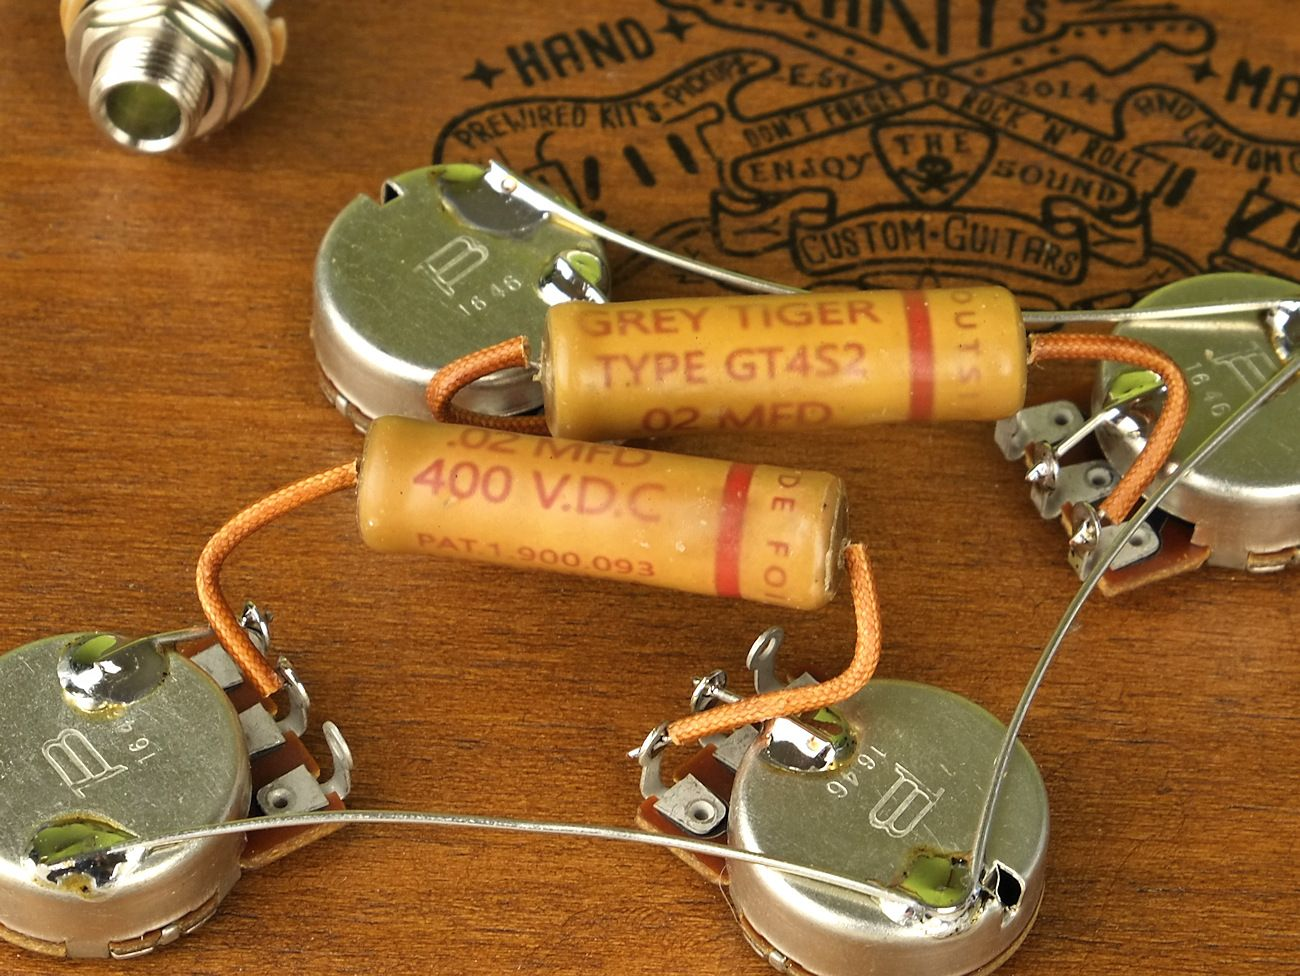 medium resolution of arty s custom guitars vintage pre wired prewired kit grey tiger bourns wiring assembly harness set